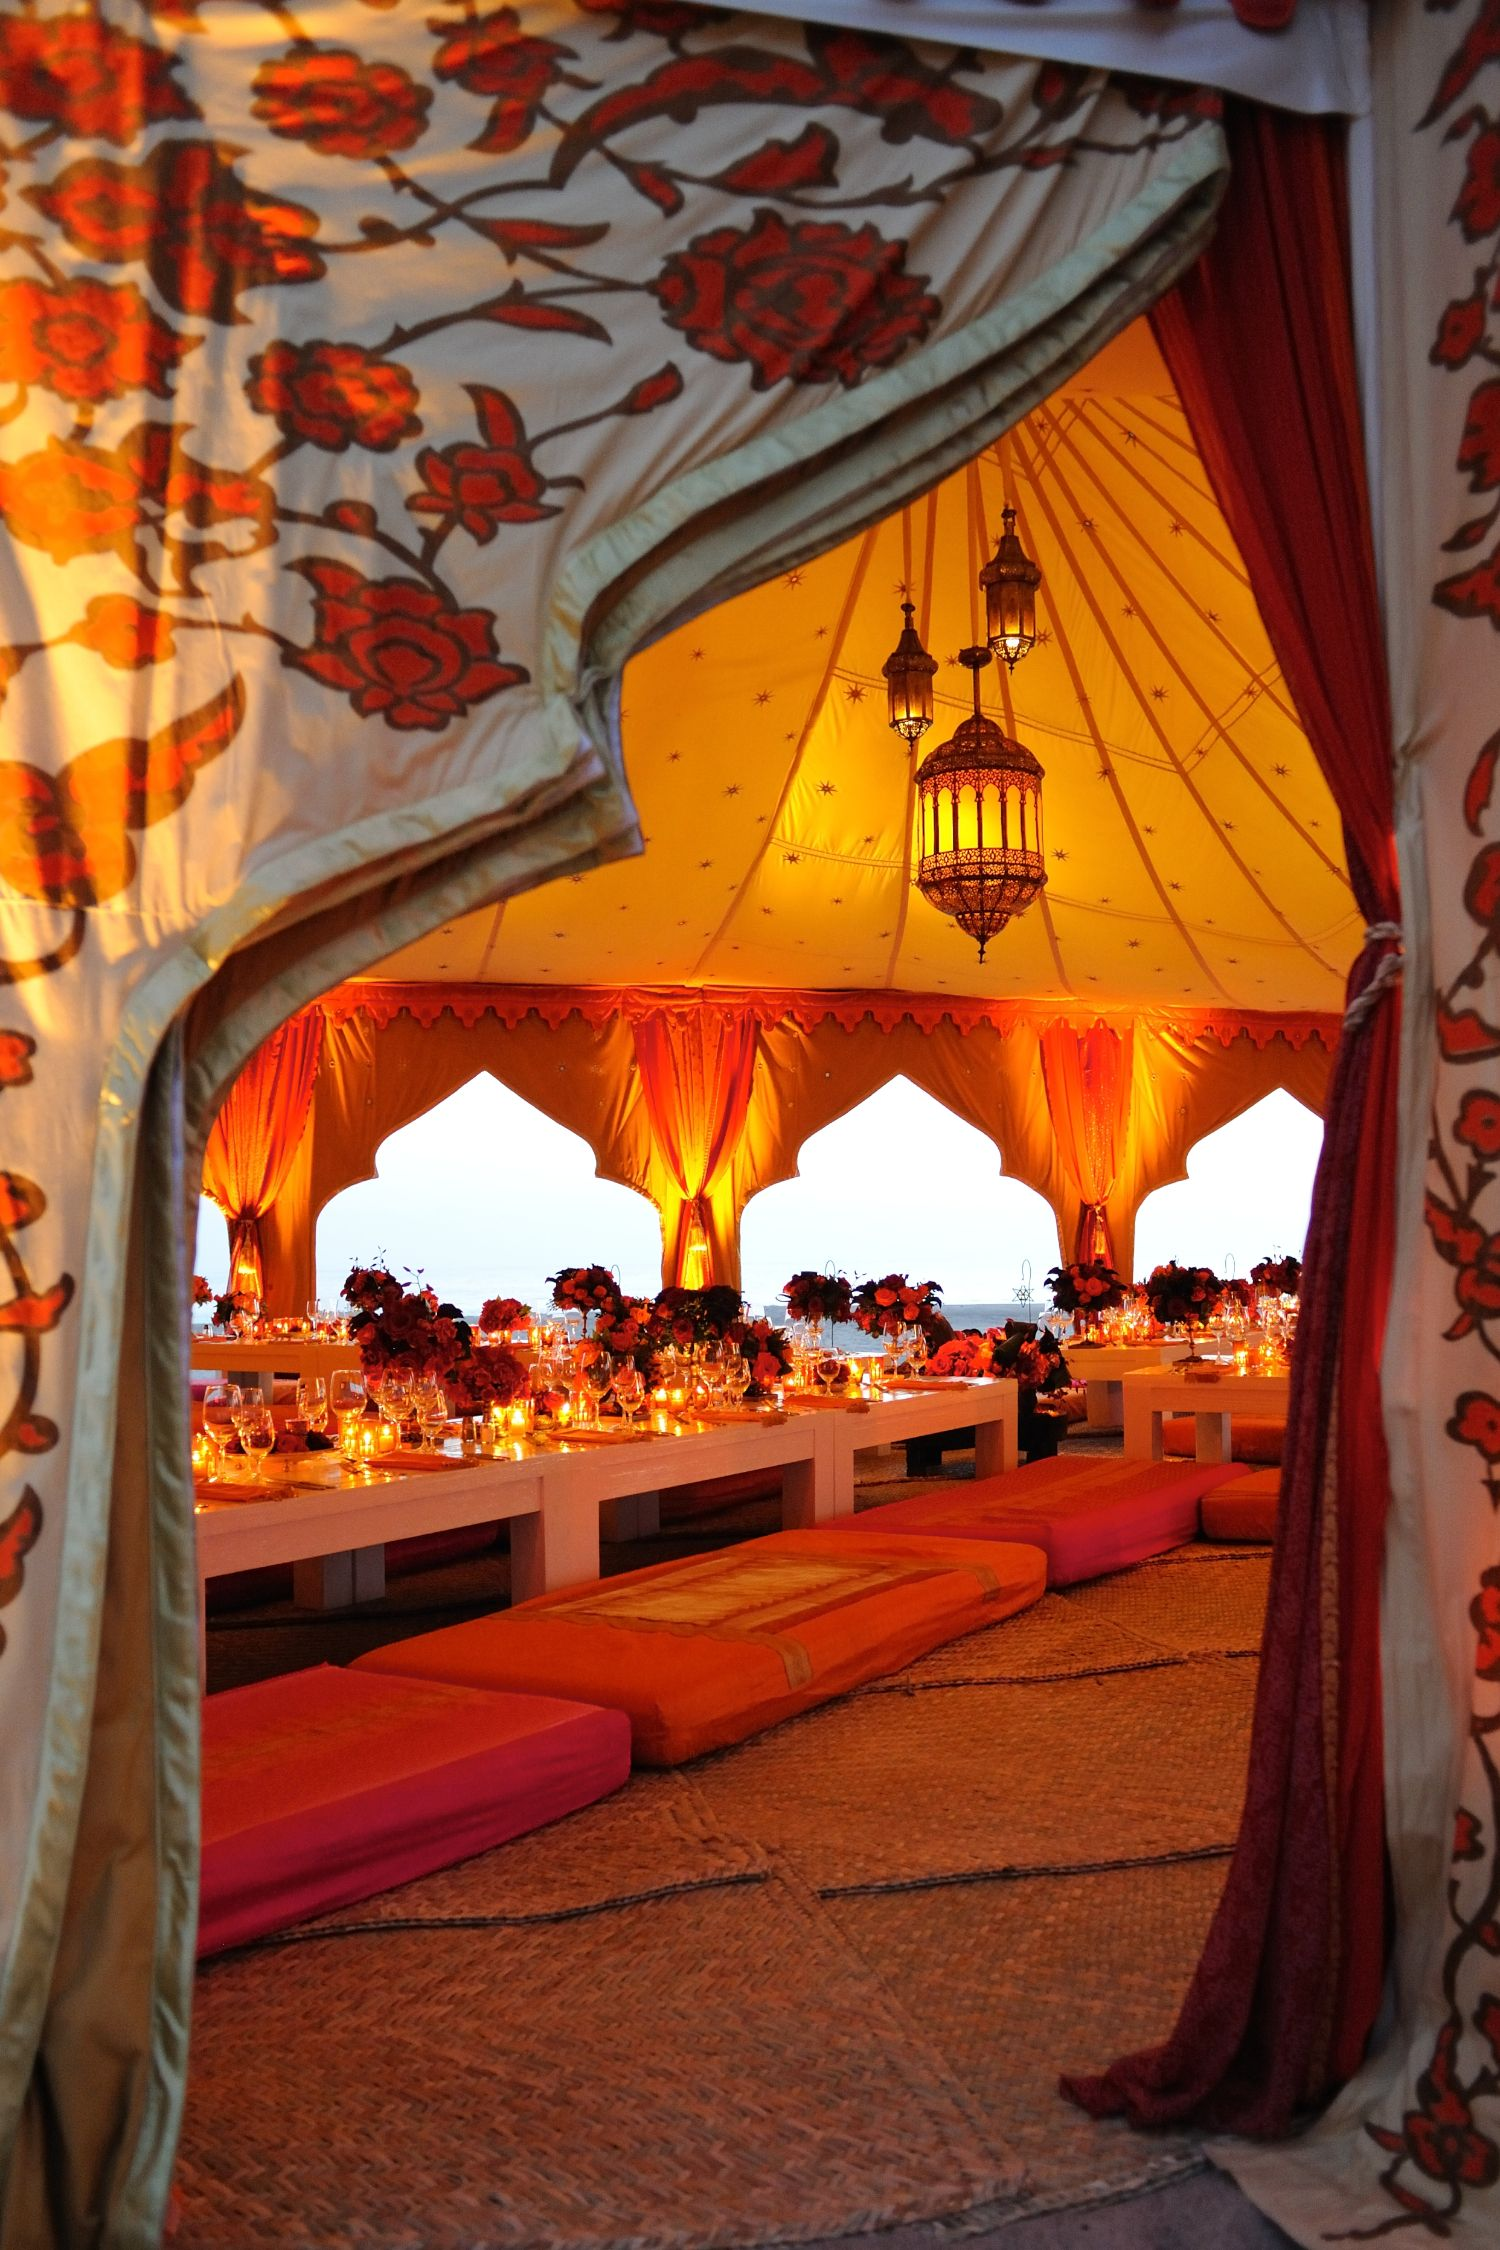 Gorgeous Moroccan Tent at La Loma Beach Cuixmala Mexico Designed by Marianne Weiman Nelson & Gorgeous Moroccan Tent at La Loma Beach Cuixmala Mexico Designed ...